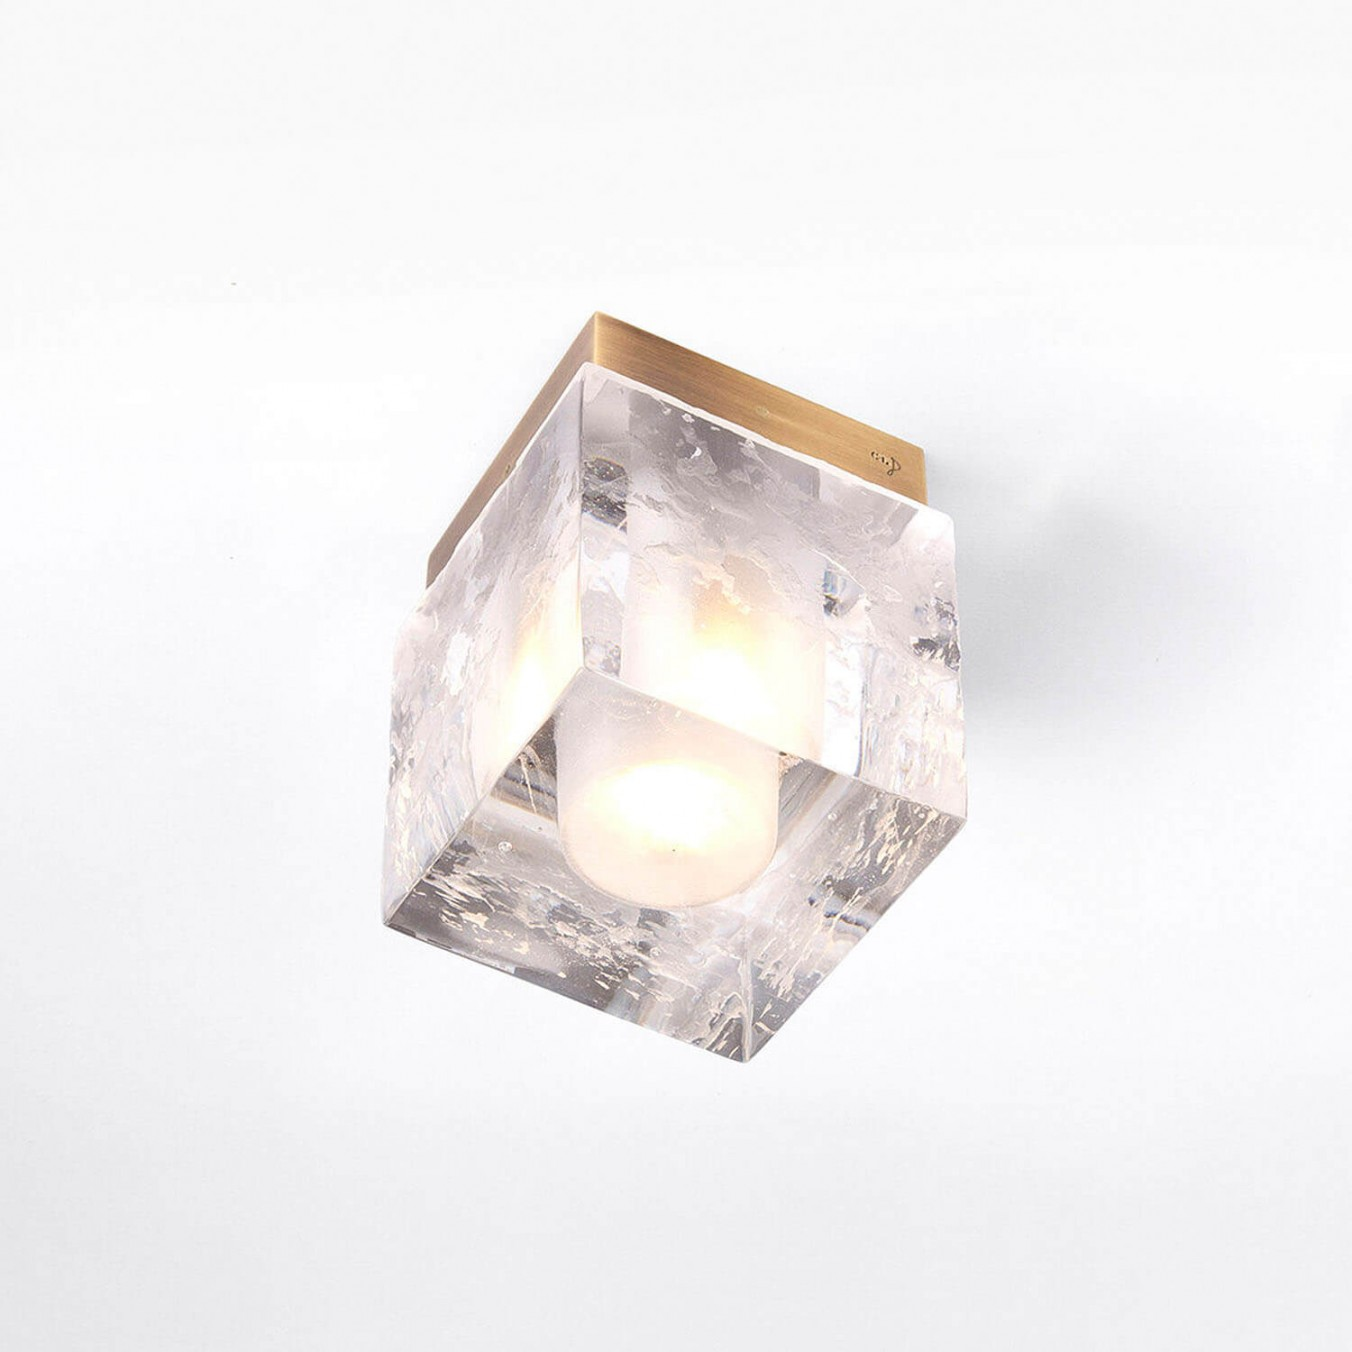 nebula plafonnier/ceiling light